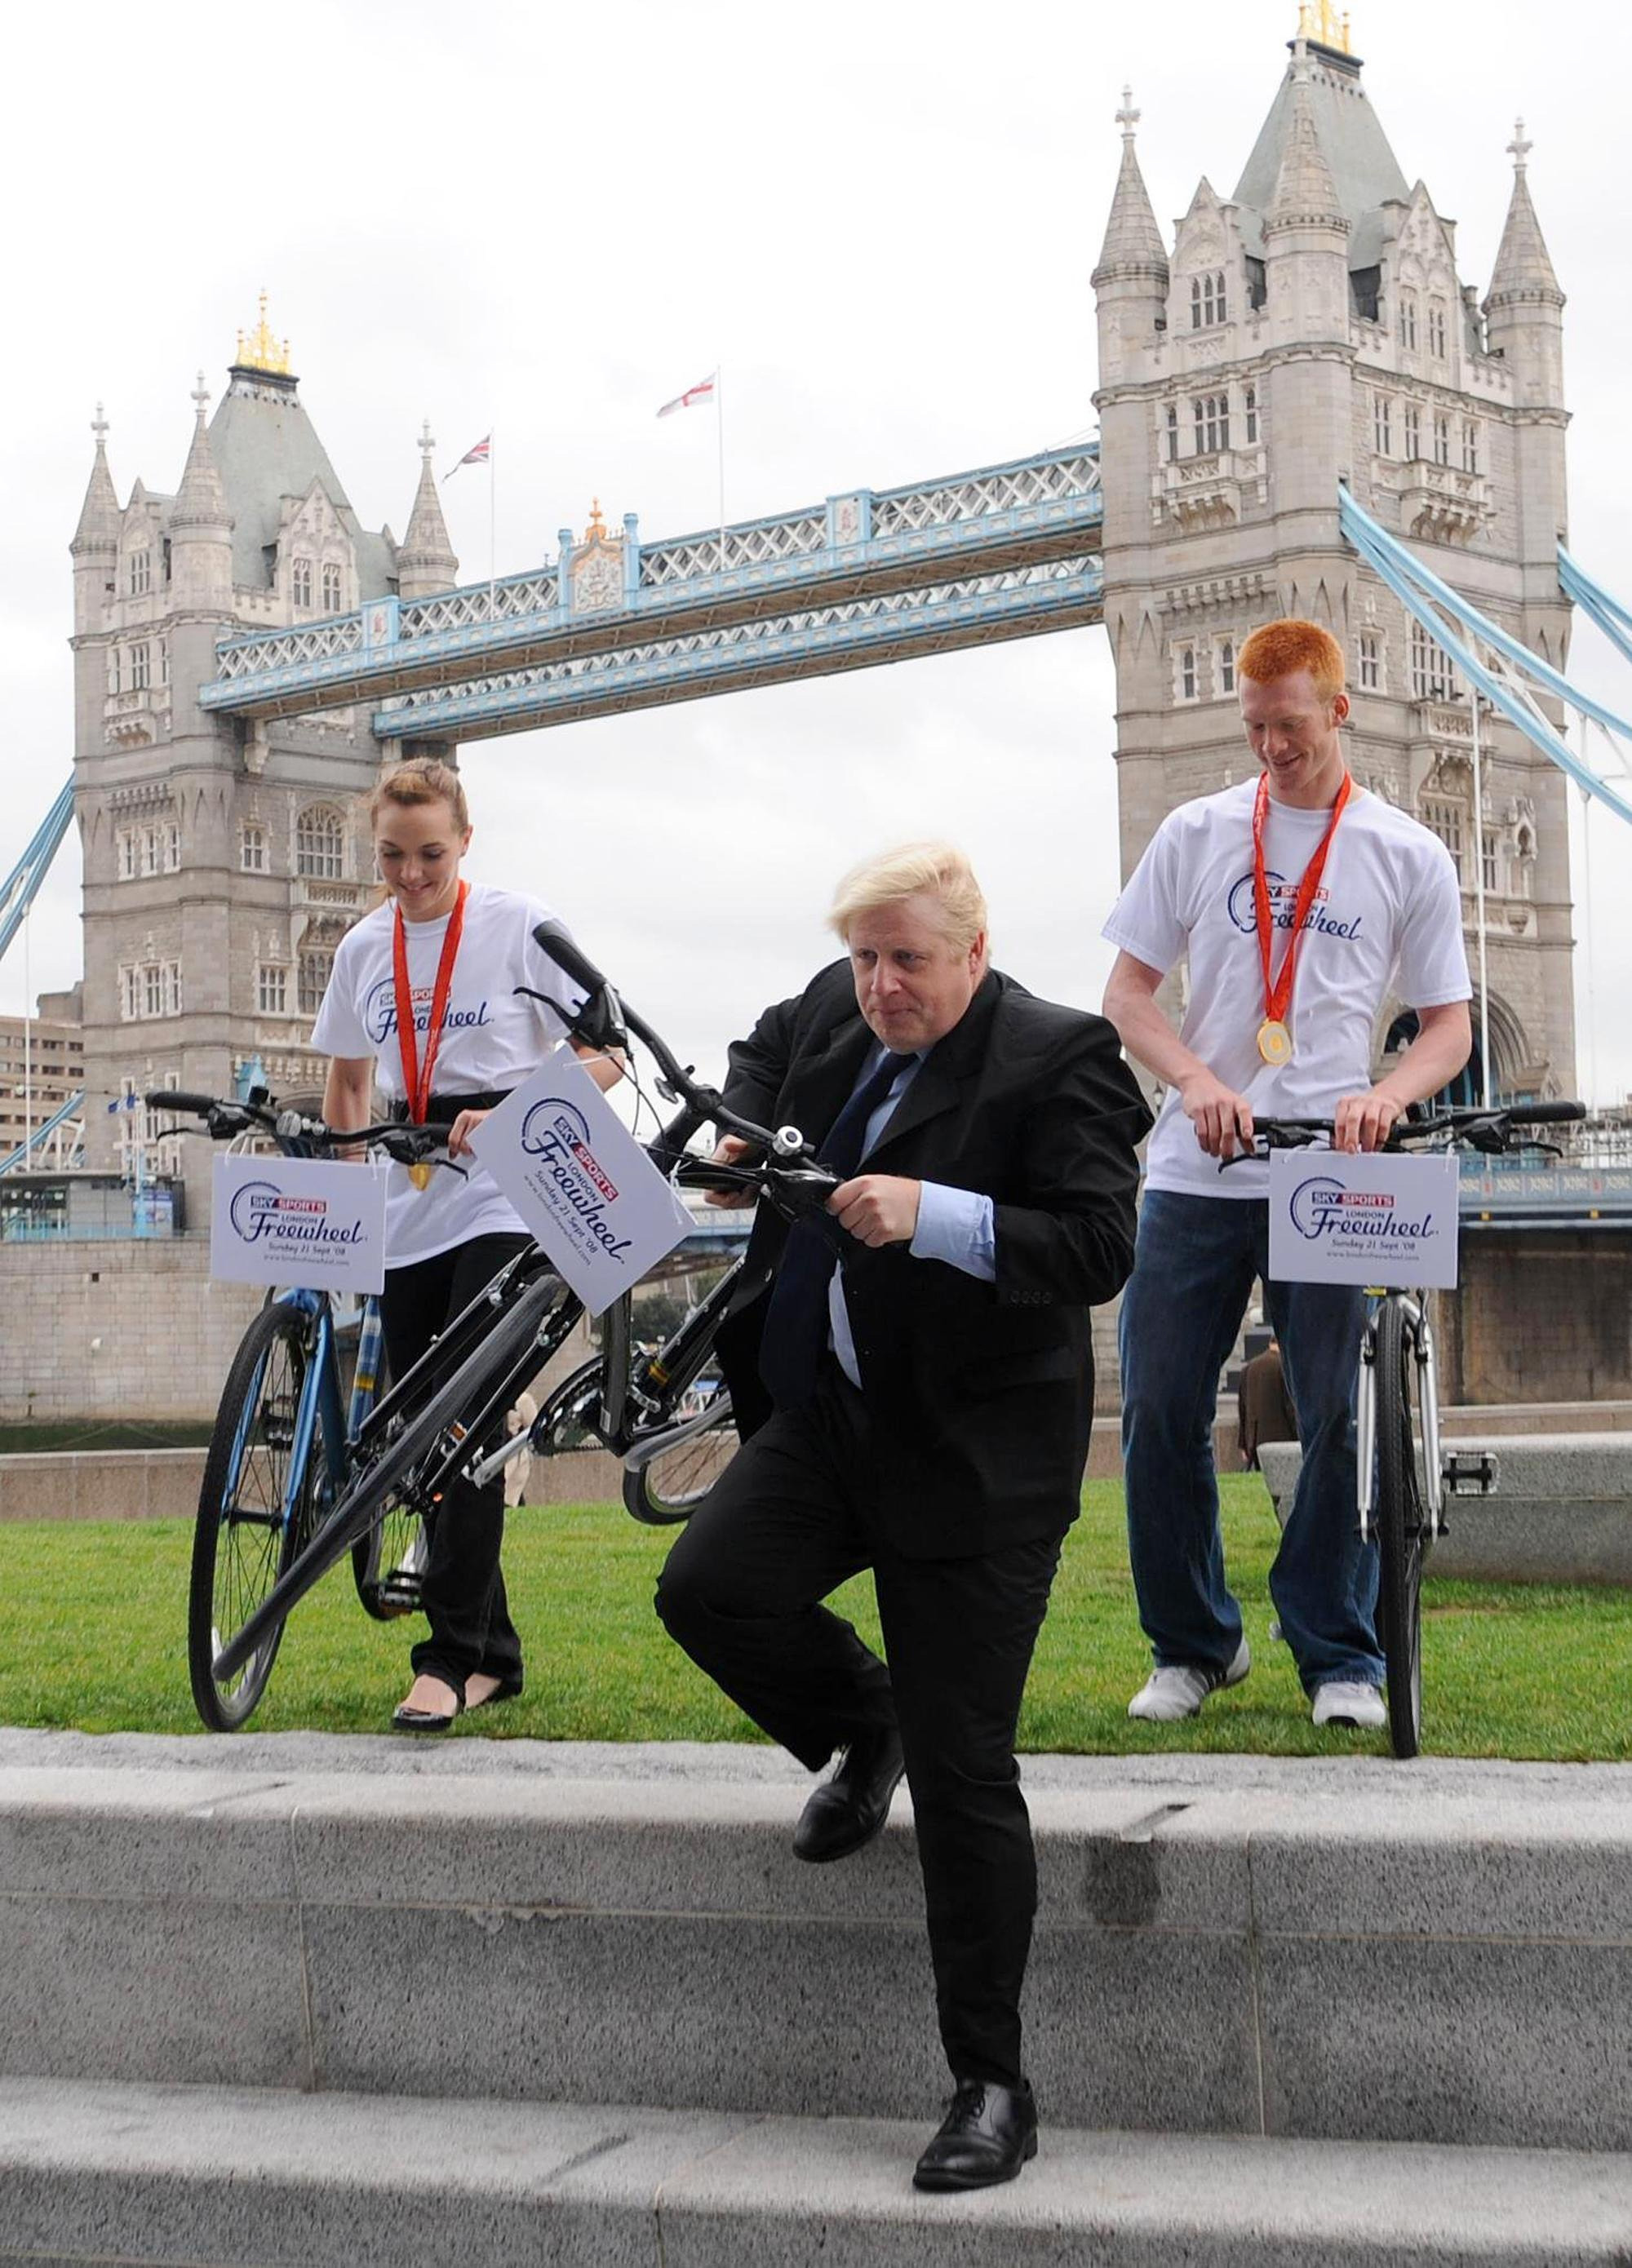 London Mayor Boris Johnson attends a photocall with Olympic Gold medal cyclists Victoria Pendleton and Ed Clancy to encourage Londoners to sign up for the Sky Sports London Freewheel event on September 21st.